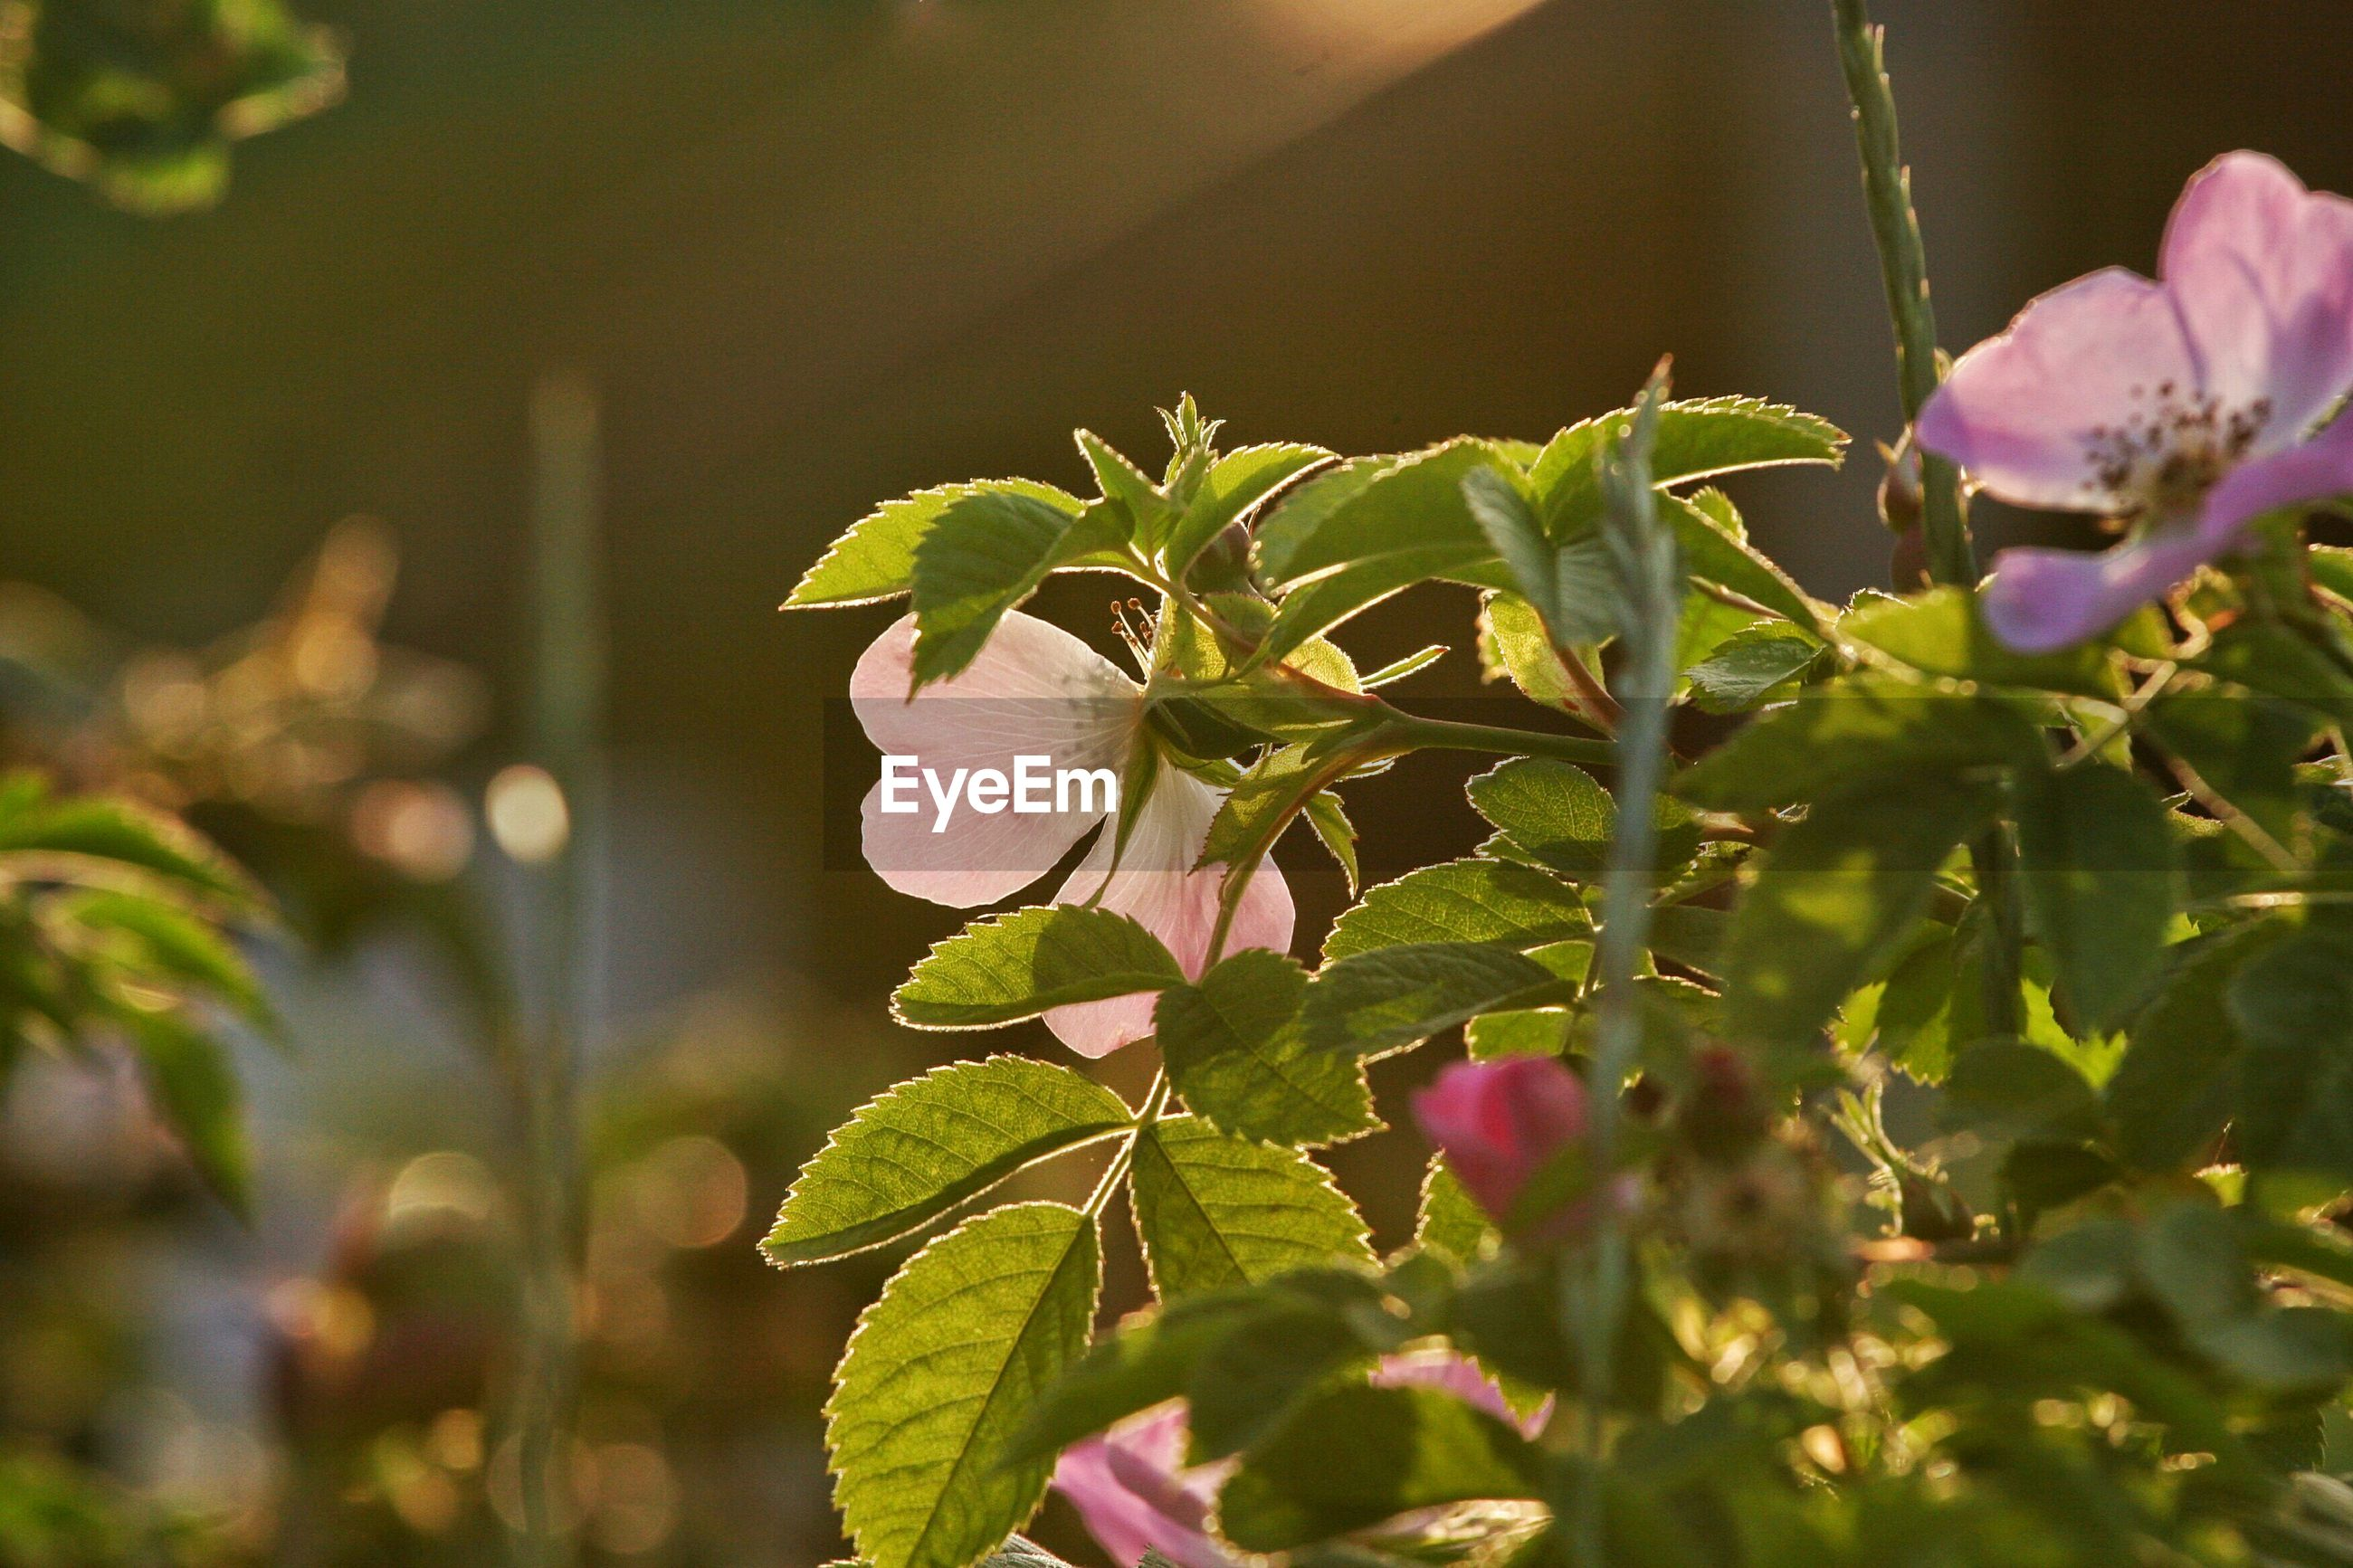 Low angle view of purple flowering plant growing in yard